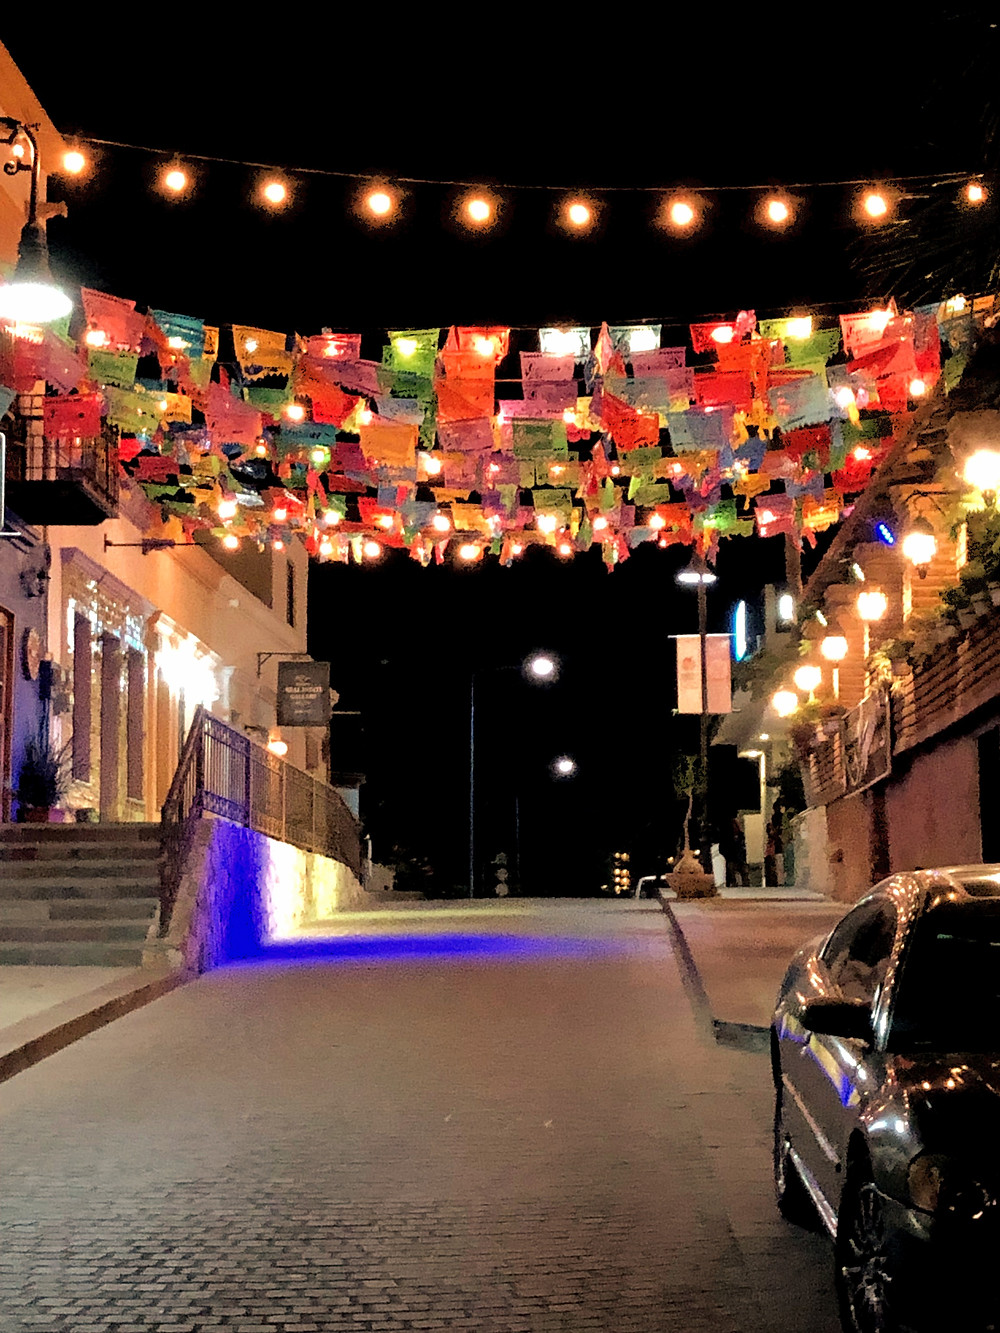 cabo, cabo san lucas, arts district, san jose del cabo, mexian flags, cobblestone street